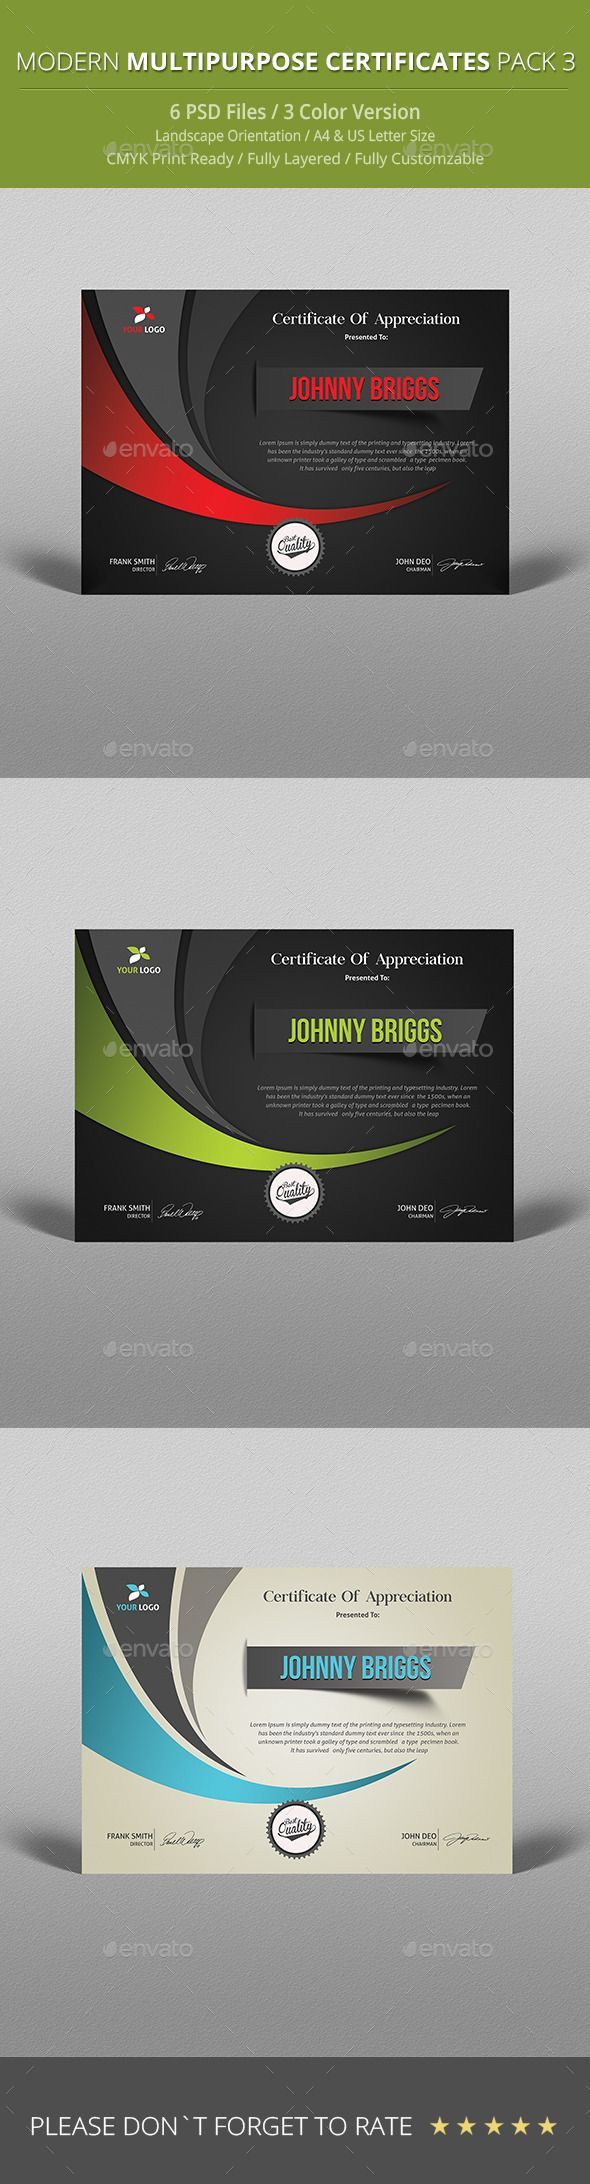 Certificate certificate template and psd templates modern multipurpose certificate template psd download here httpgraphicriver yadclub Images